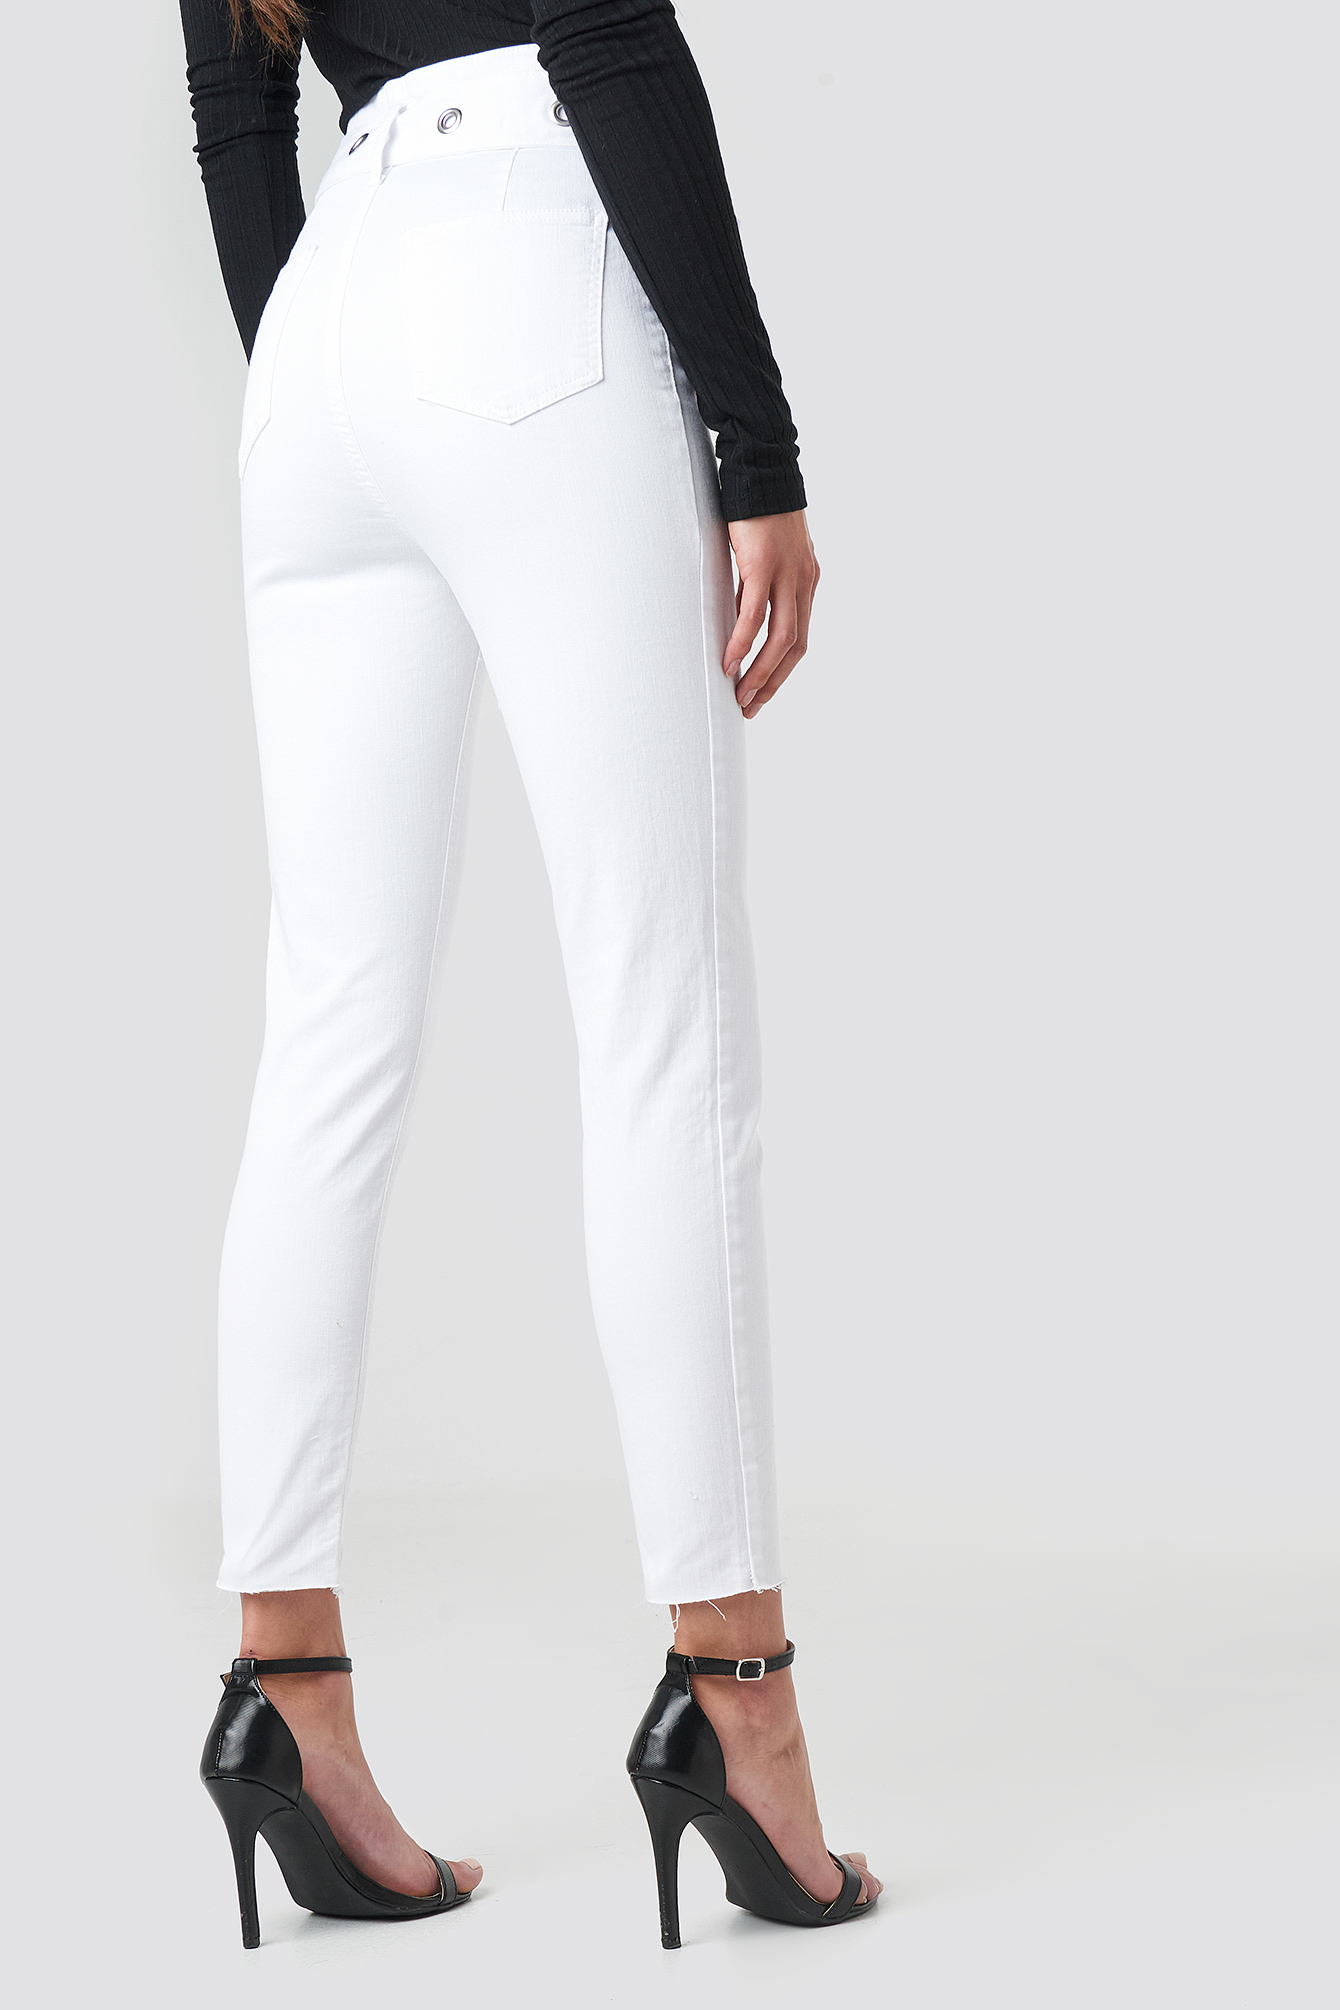 Milla High Waist Slim Fit Jeans NA-KD.COM